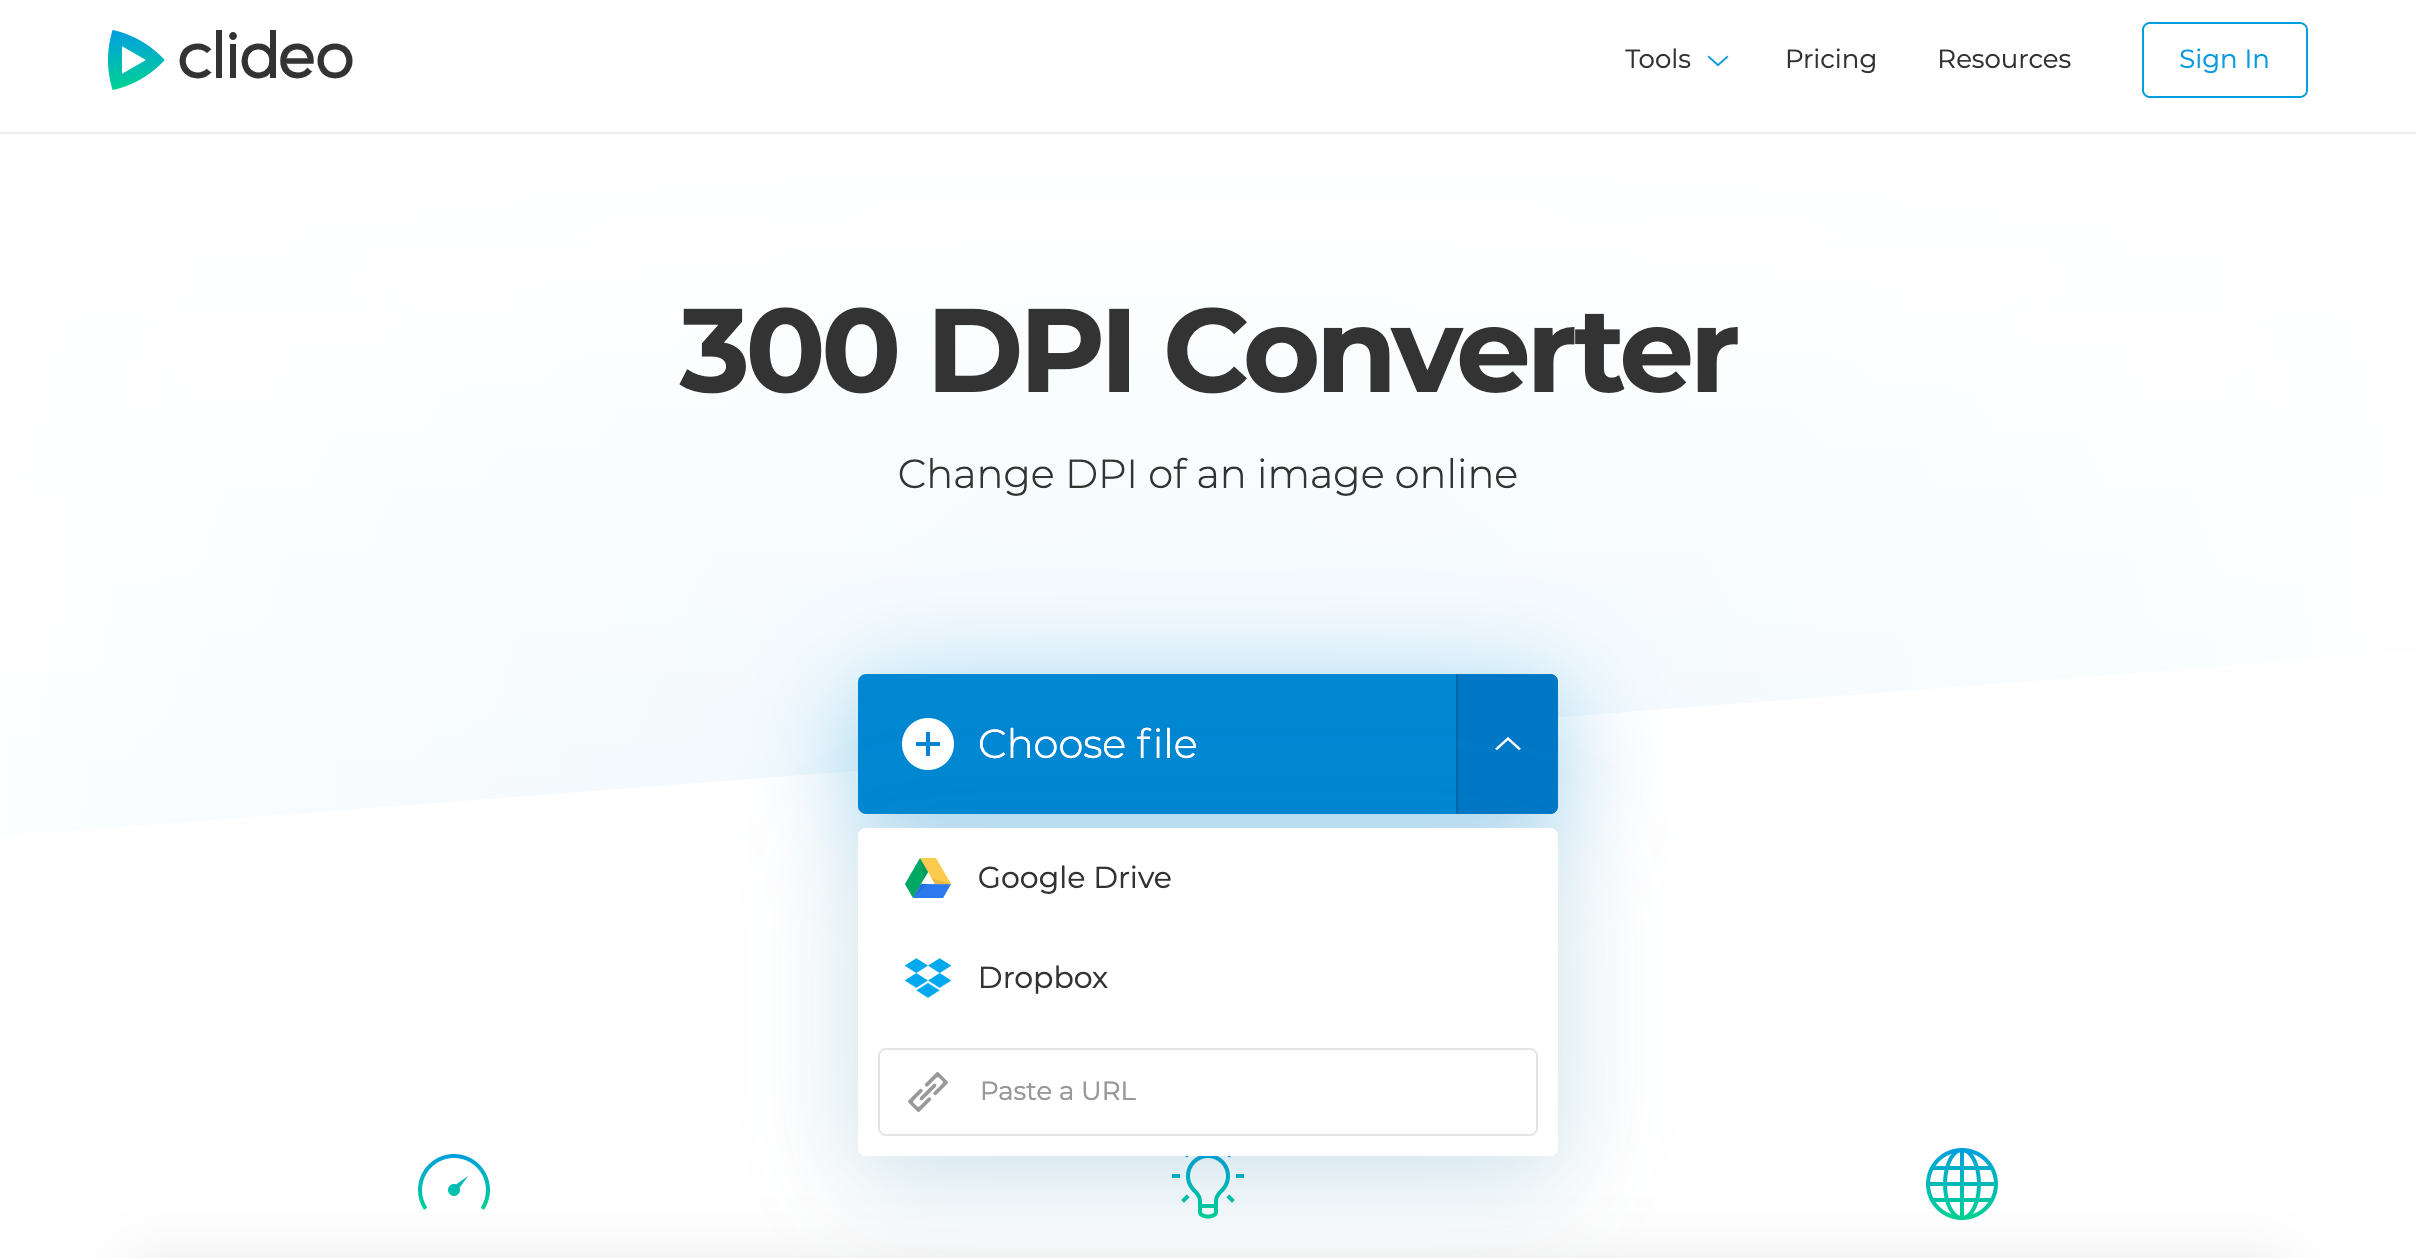 Upload image to convert to 300 DPI